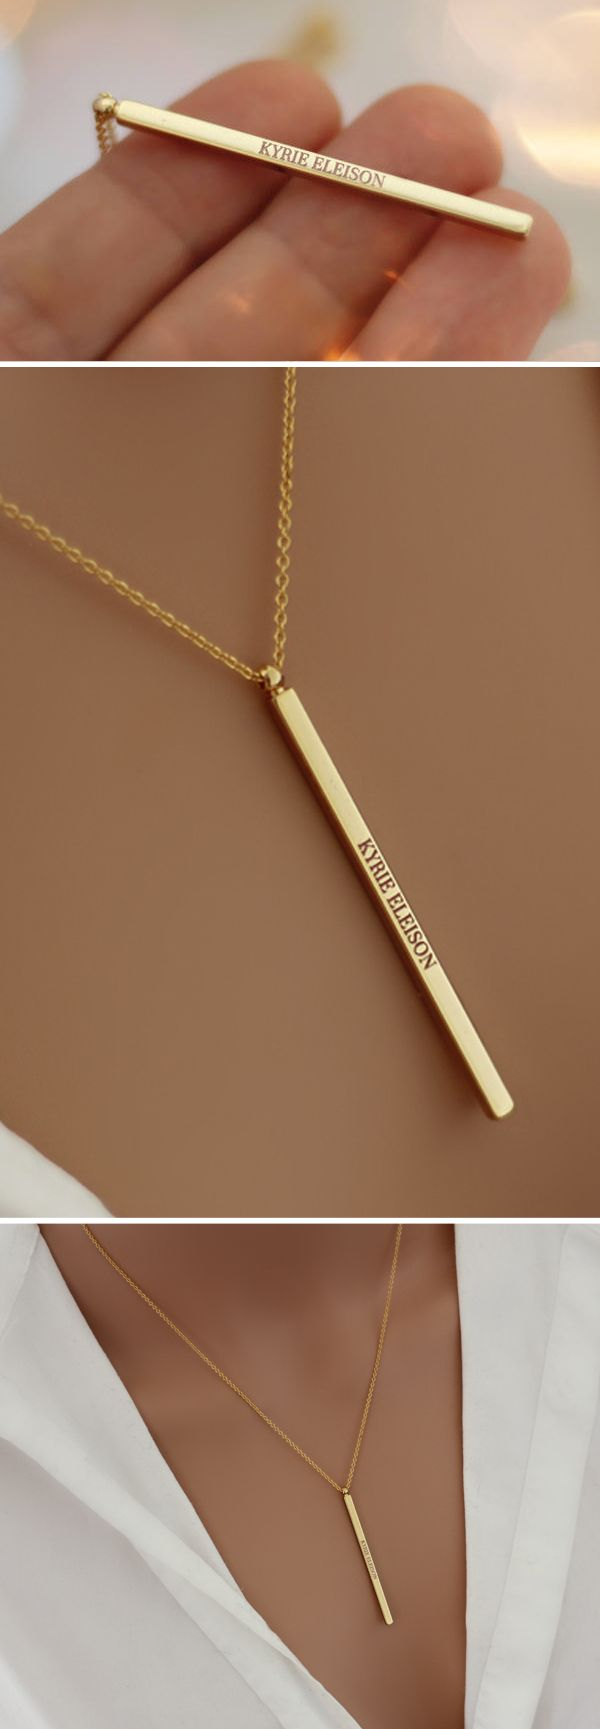 "Delicate necklace minimalist and discreet consisting of a fine chain and a pendant bar bearing the inscription in Latin ""KYRIE ELEISON"" which means ""Lord, have mercy"". #gold #plated #16k #jewelry #jewellery #french #creation #handmade #religious #medal  #christian #christians #catholic #necklace #etsy #bijoux #bijou #collier #fait #main #religieux #pendentif #médaille #religieuse #minimalist #gravure #engraved #kyrie #eleison #catholique #chretien #chretienne #mariage #mariée"